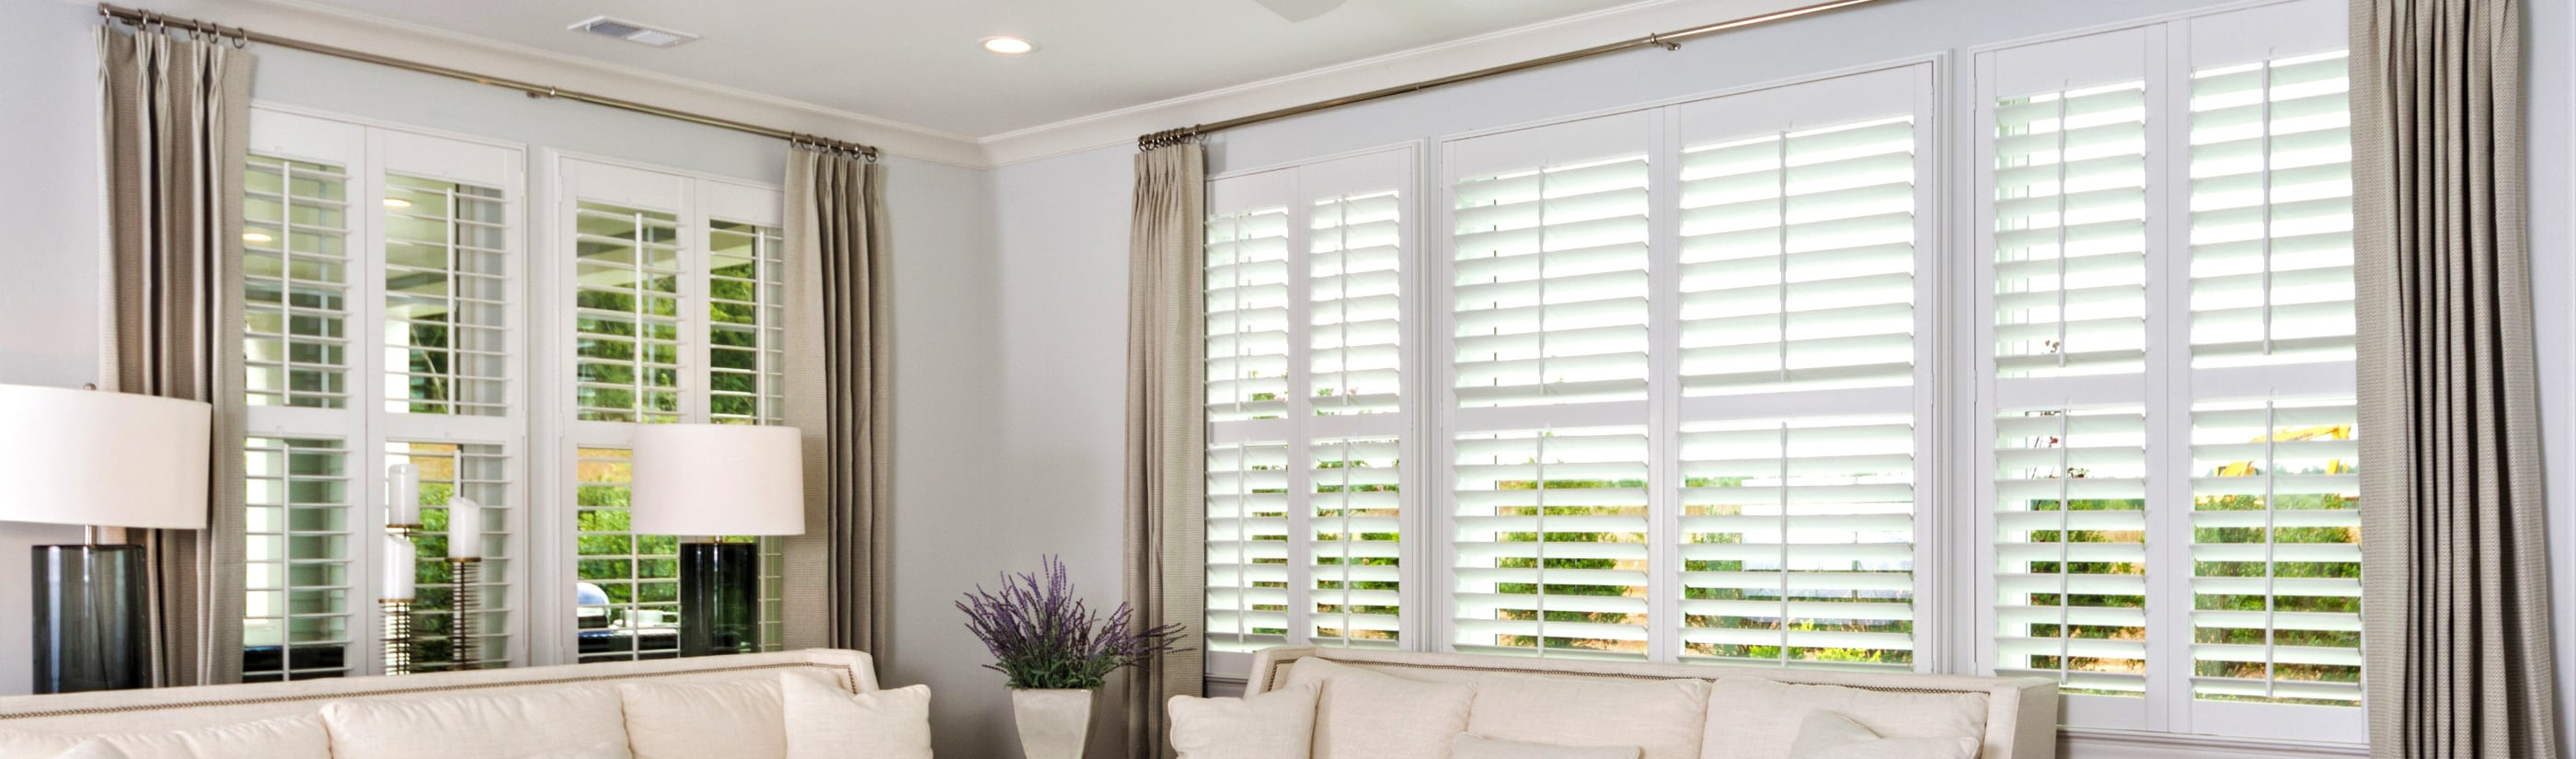 Polywood Shutters Paints In Cincinnati